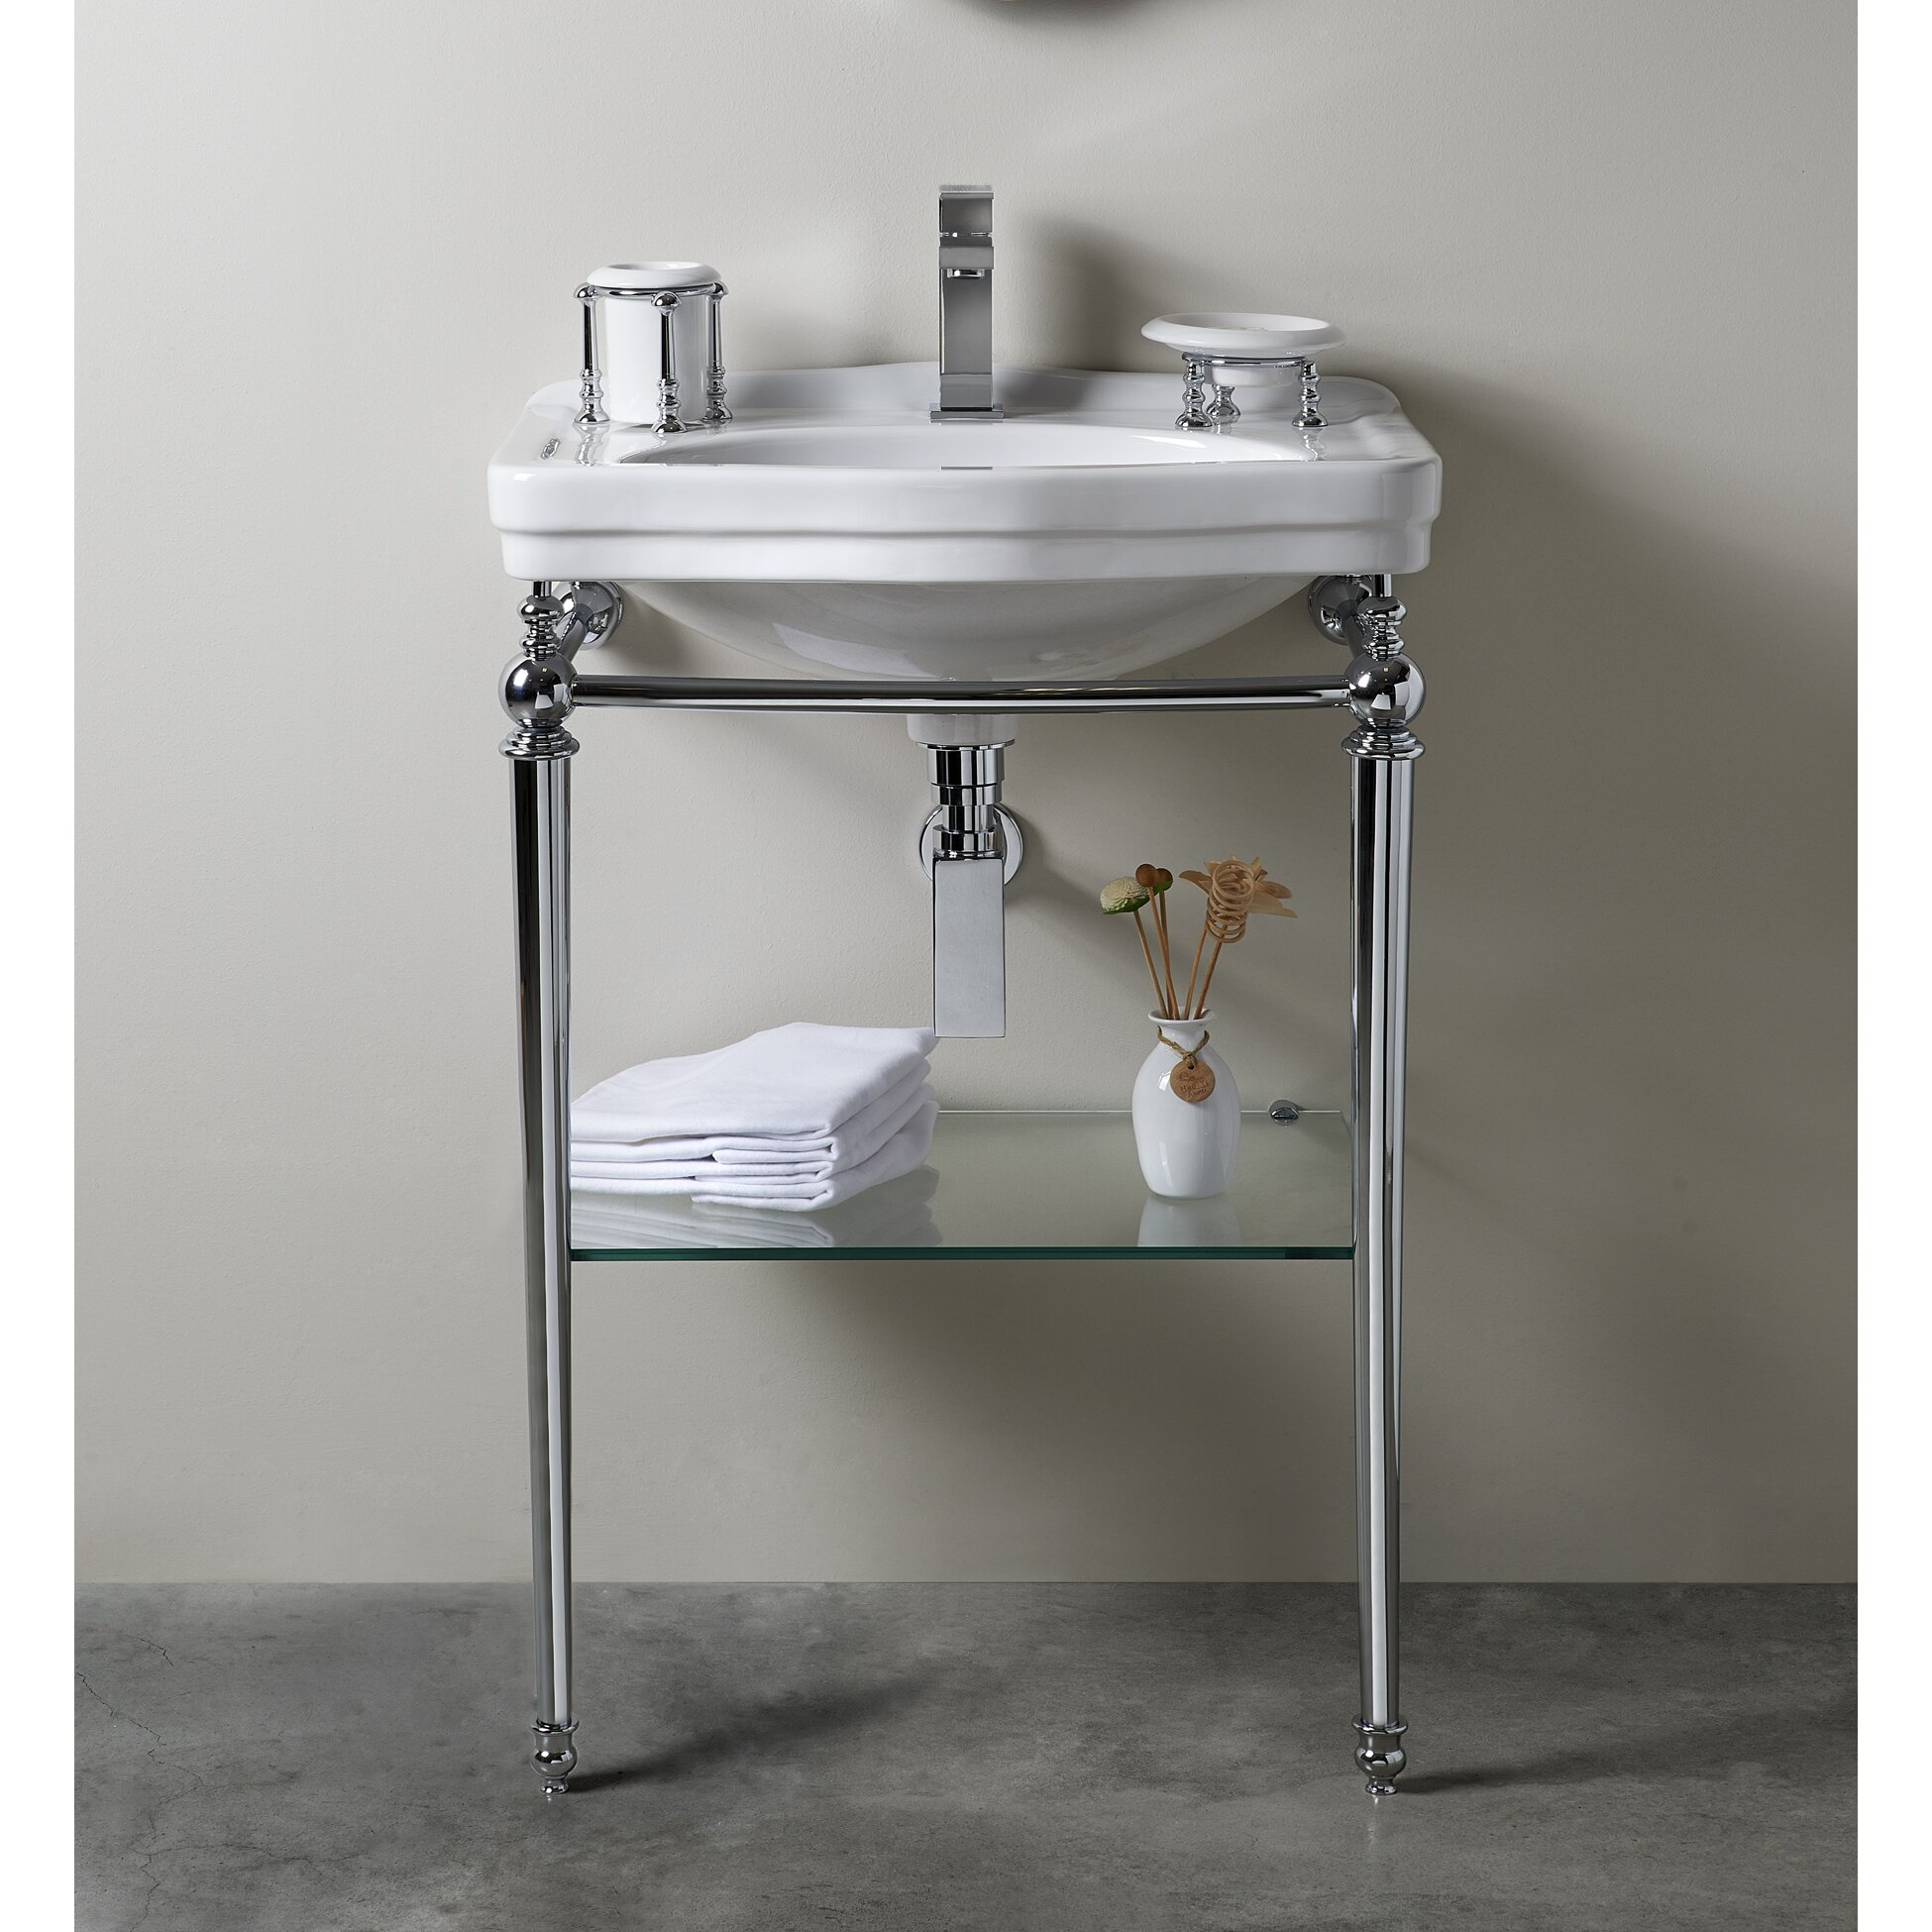 florian londra console table bathroom sink with towel bar and shelf by